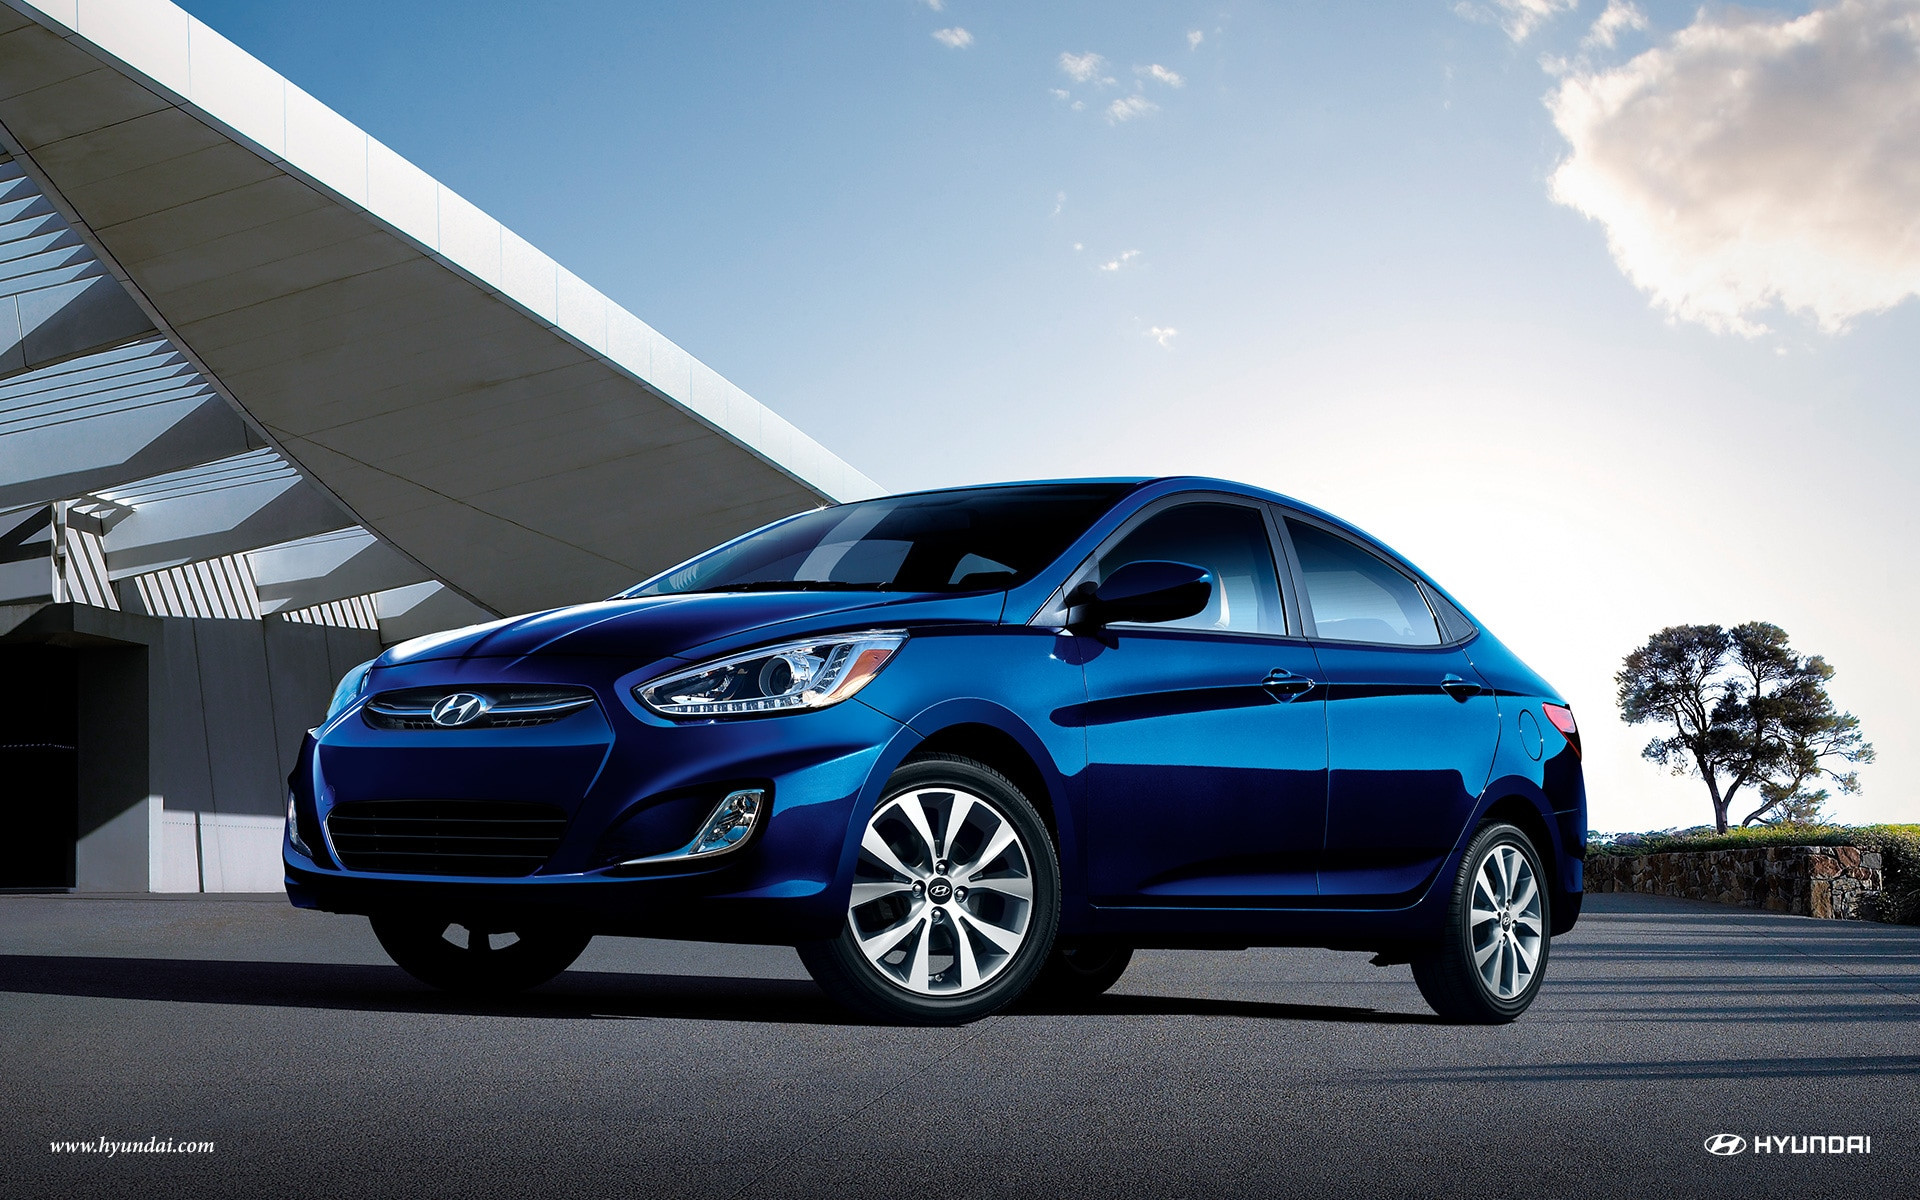 We Re Busting Out The Deals During Our Black Friday Sales Event Hall Hyundai Elizabeth City